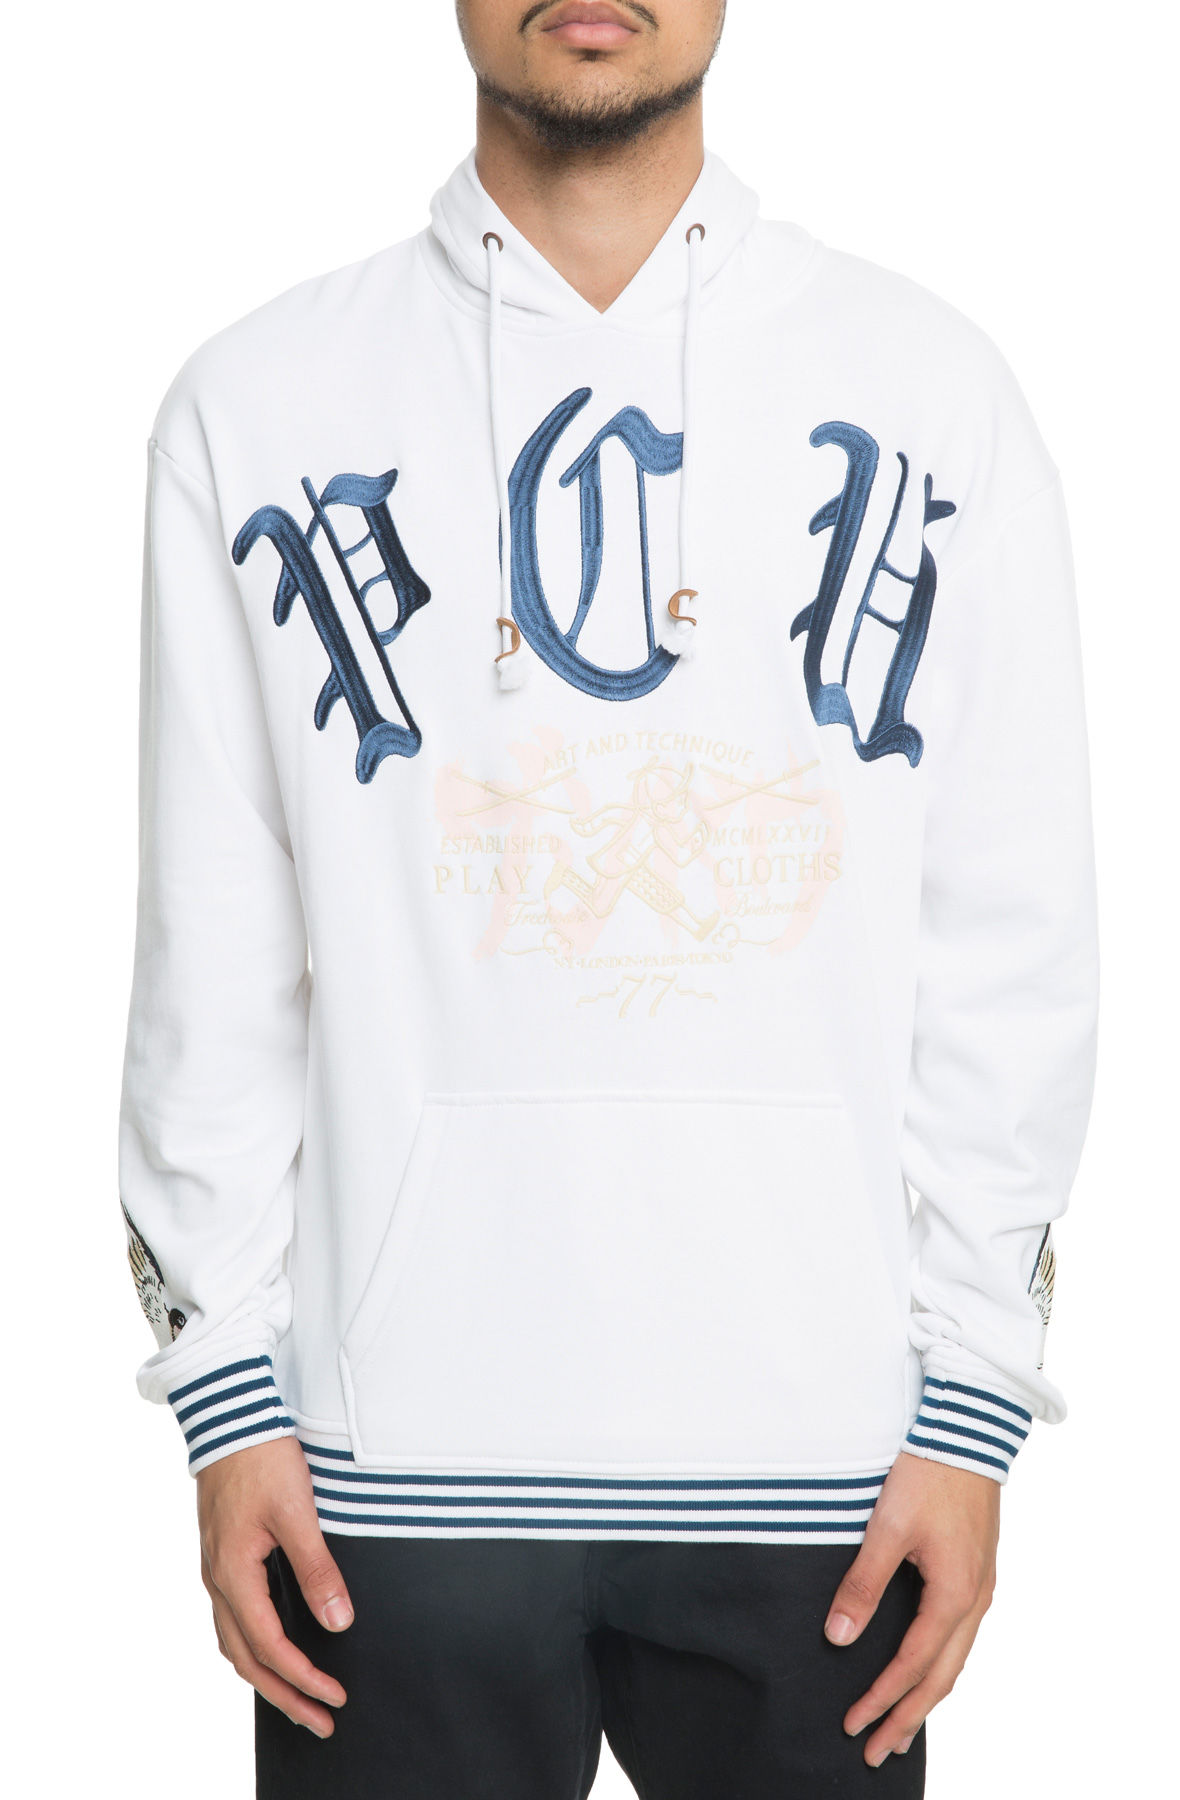 Image of The Technique Pullover Hoodie in Bleach White